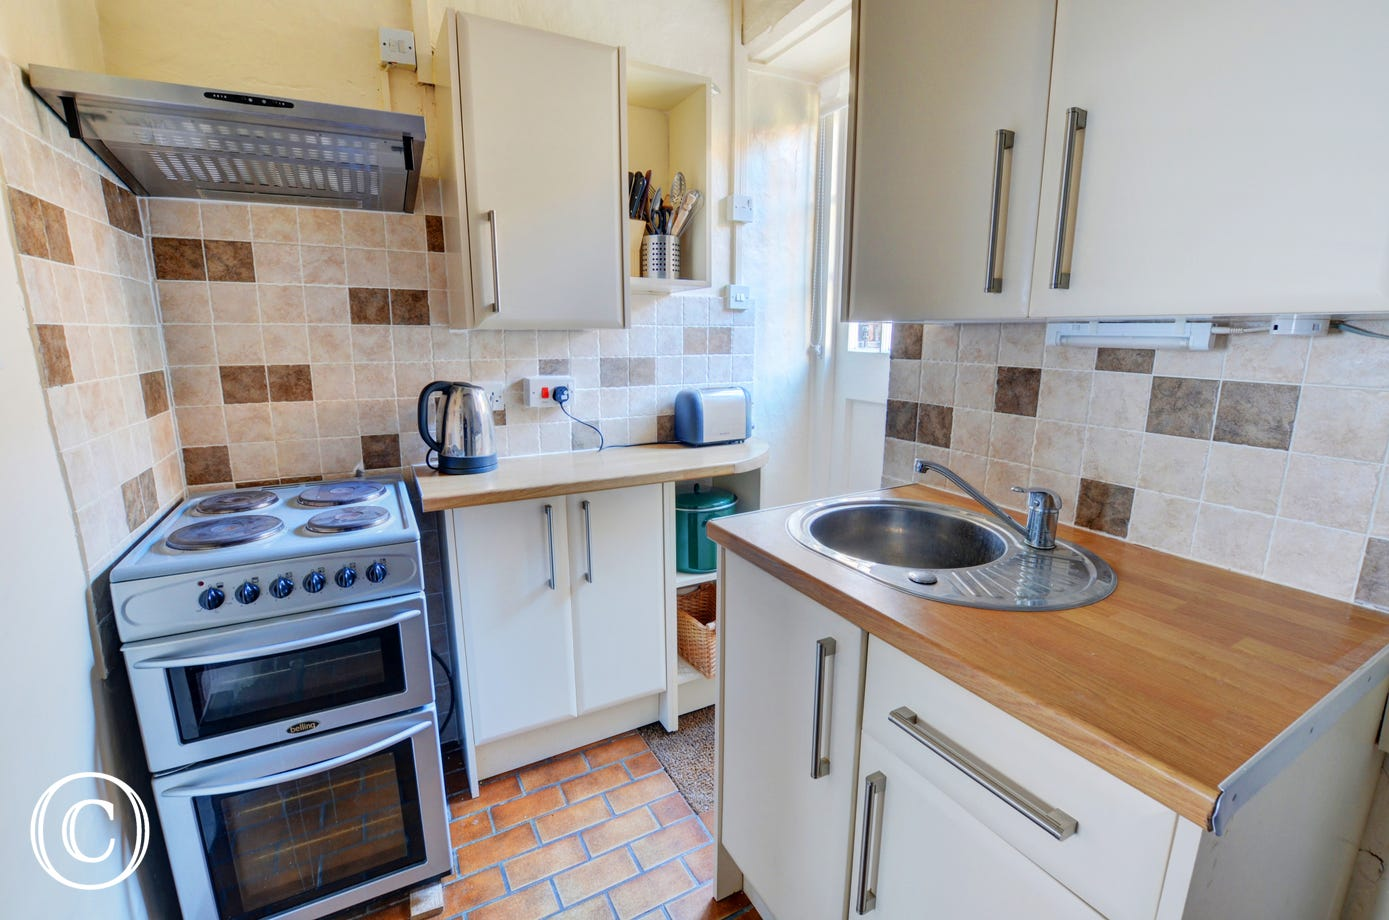 Compact kitchen with most major appliances and a door leading to the rear of the cottage